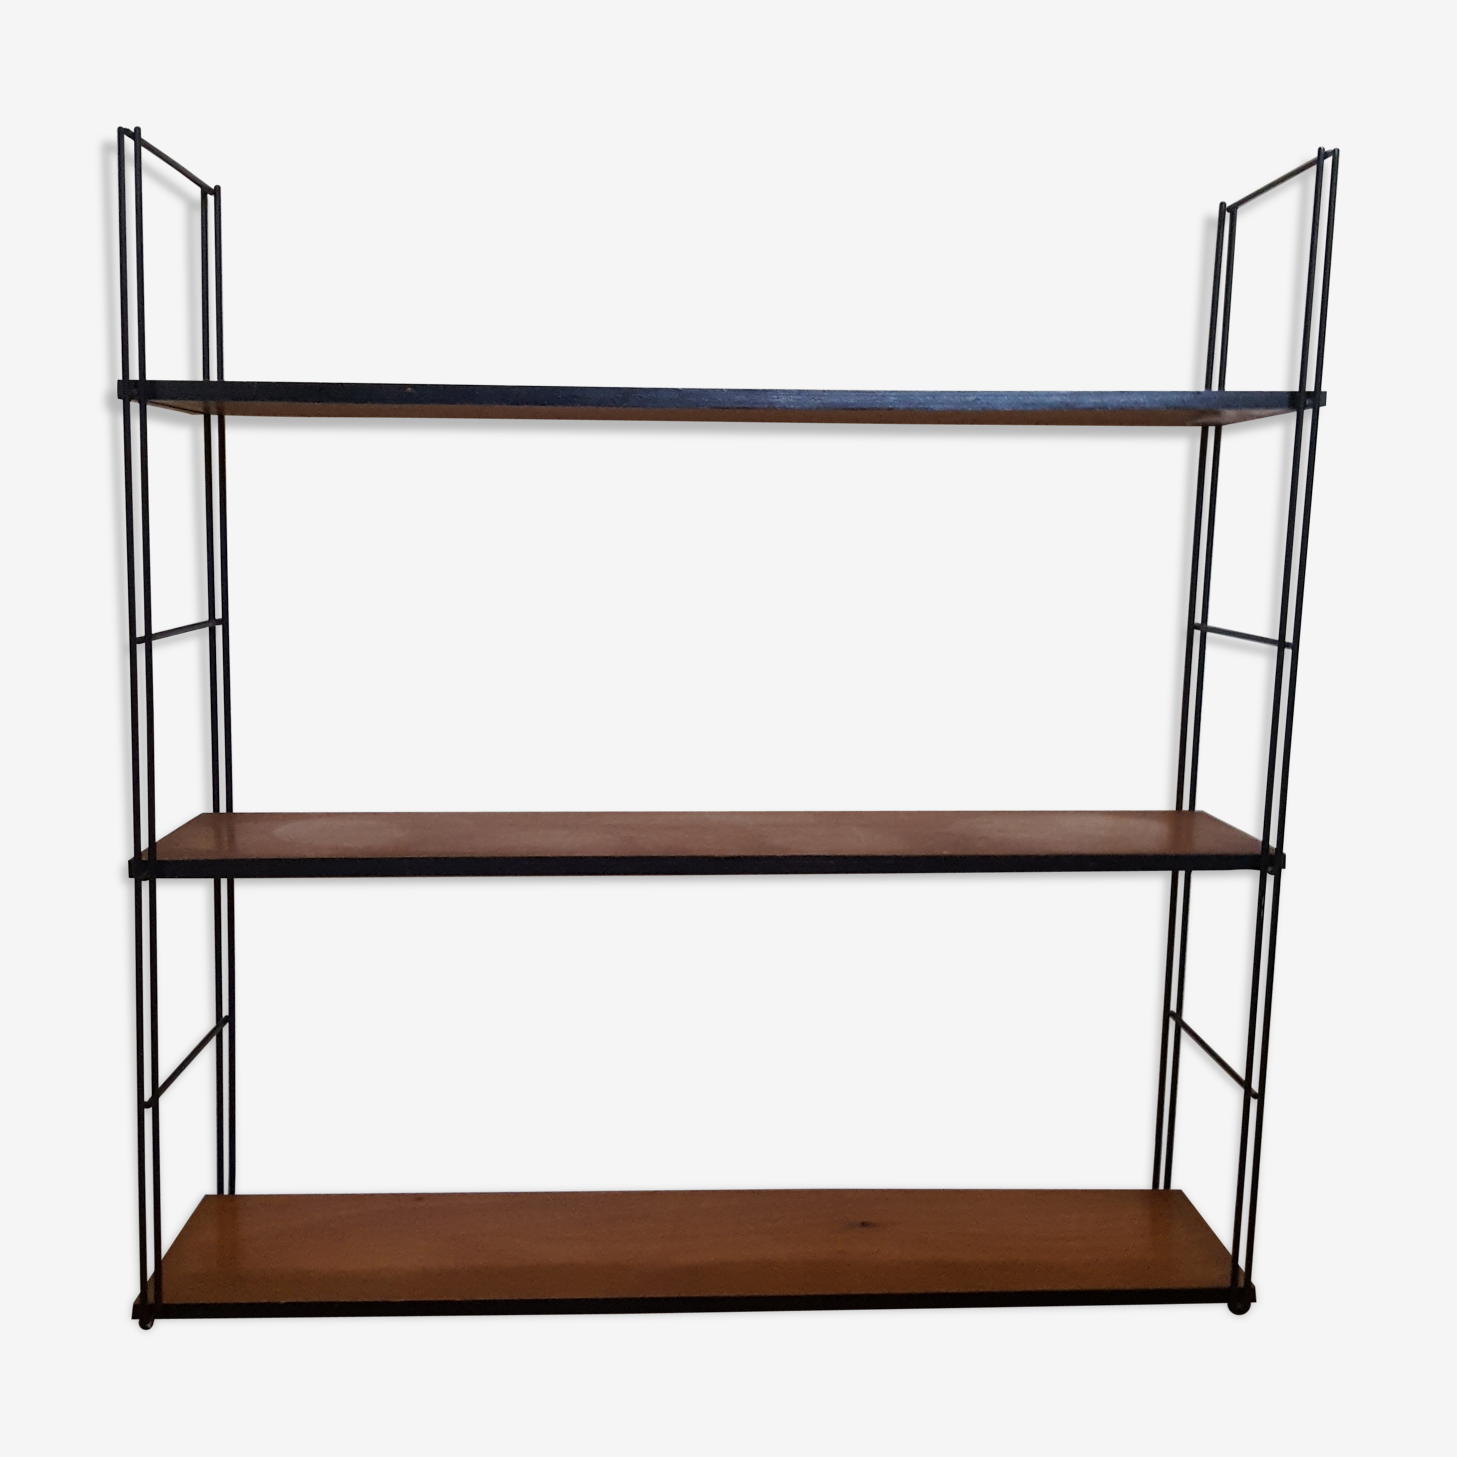 String shelf from the 60s